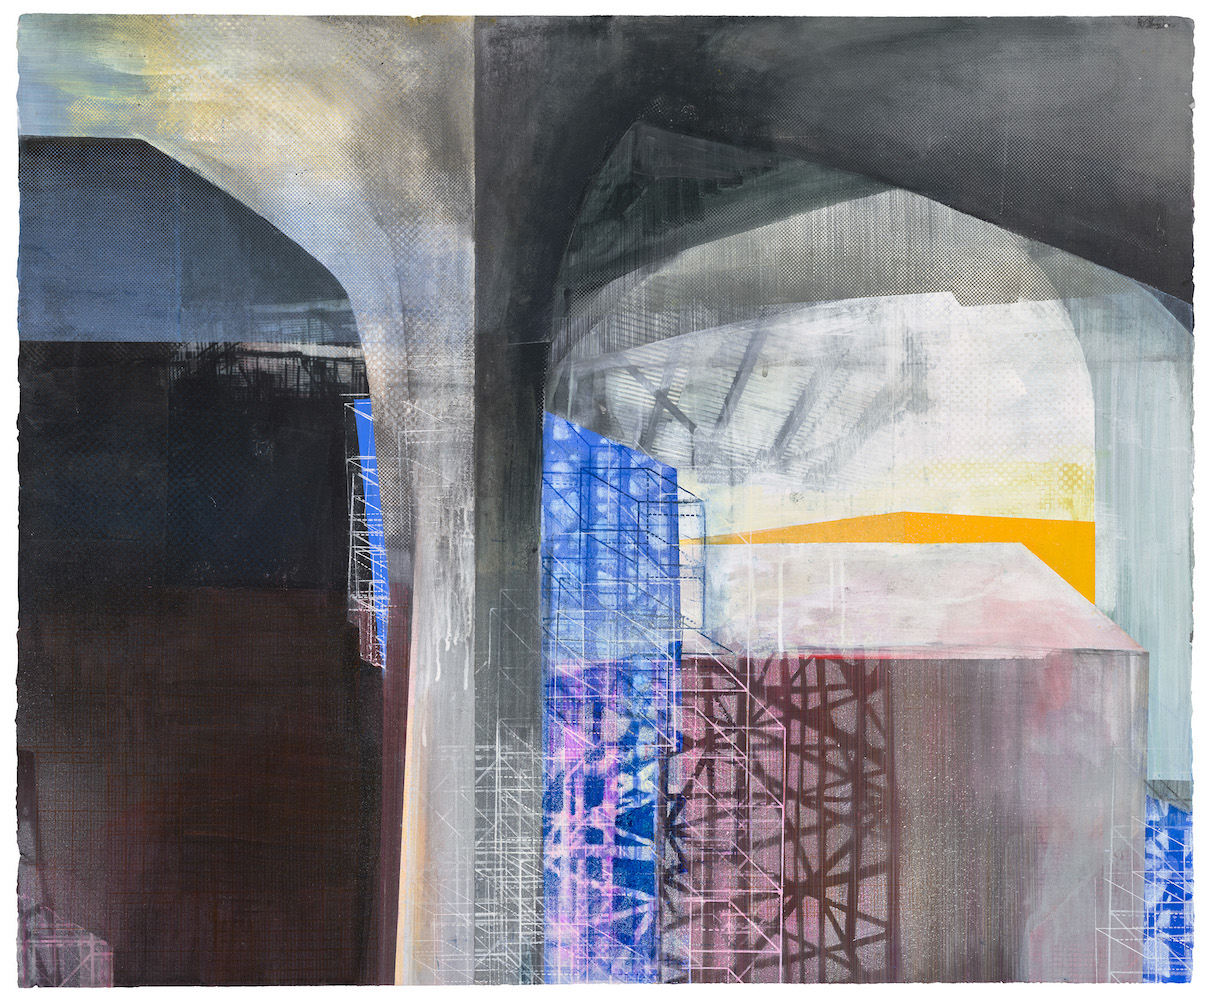 Amanda Knowles, (detail) West Seattle Bridge II, 2021, screenprint, acrylic, and graphite, 30 x 36 inches (#2 of 3 panels)